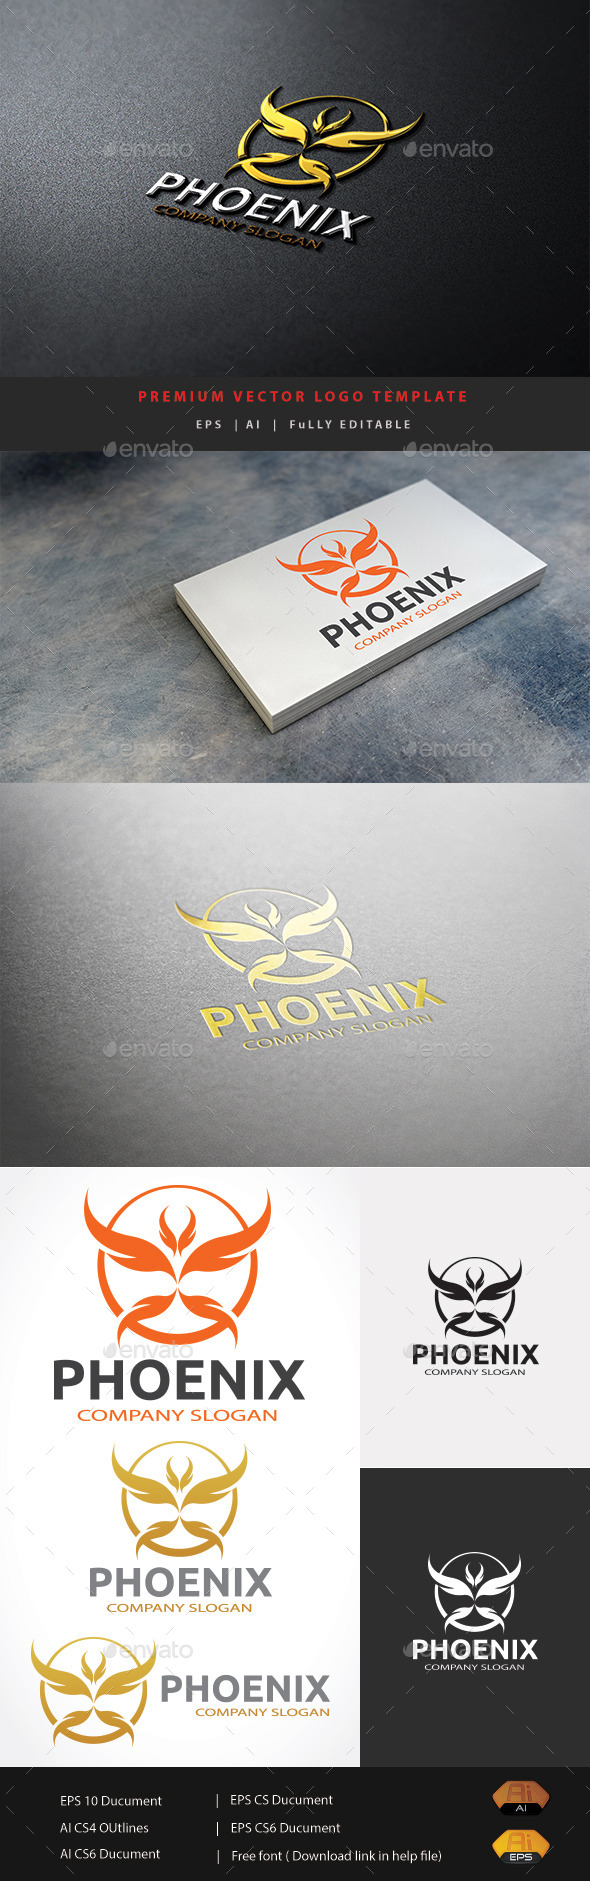 Phoenix Logo - Abstract Logo Templates